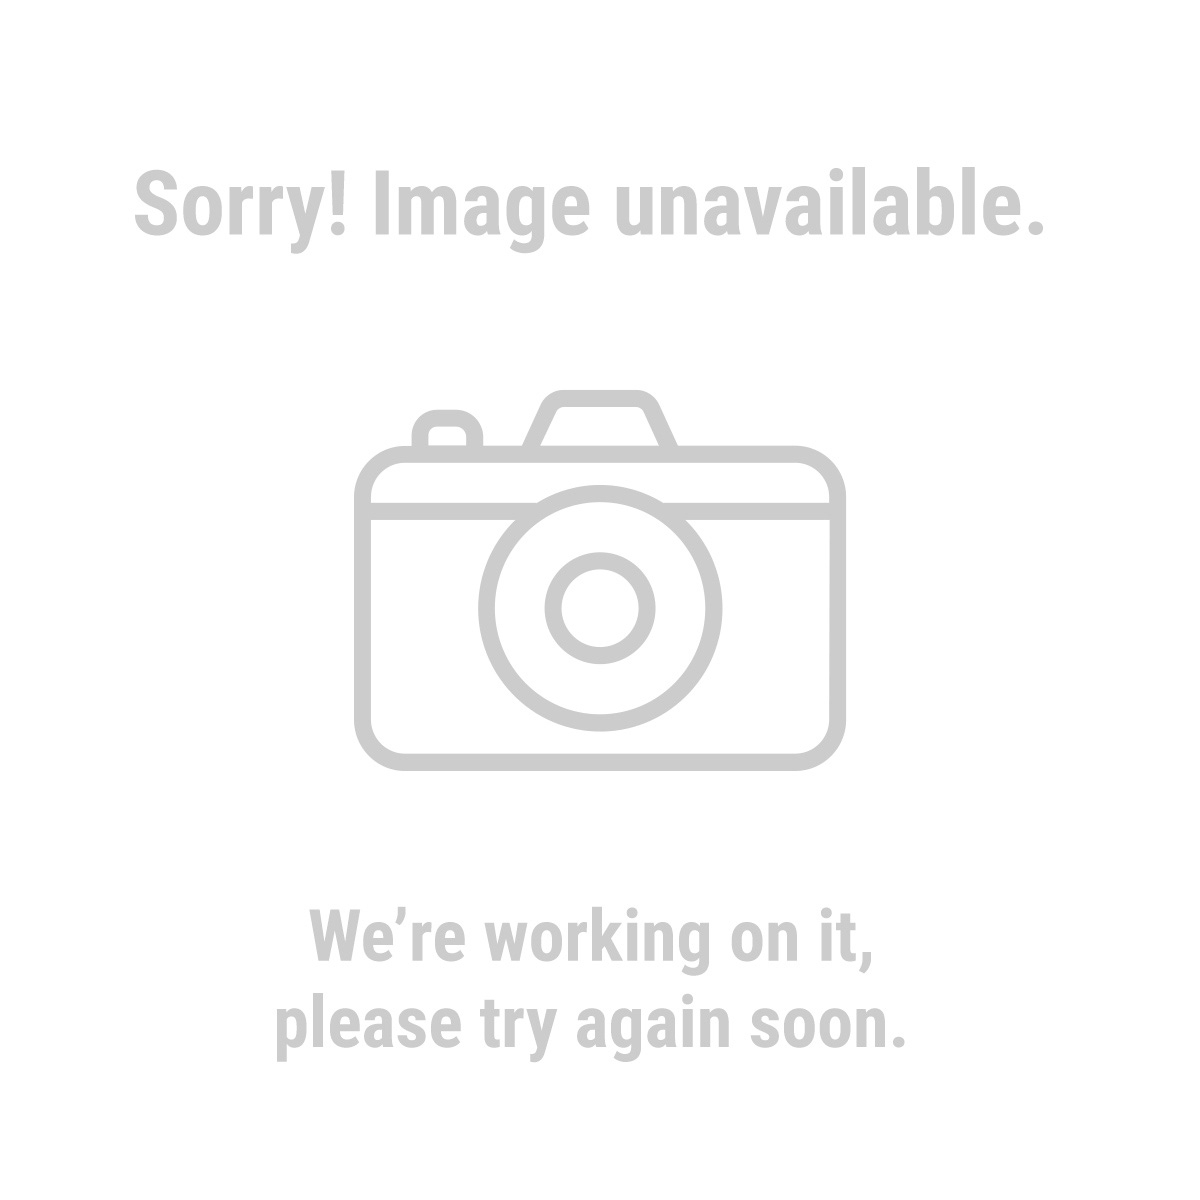 HFT® 69192 25 ft. x 53 ft. 8 in. All Purpose Weather Resistant Tarp